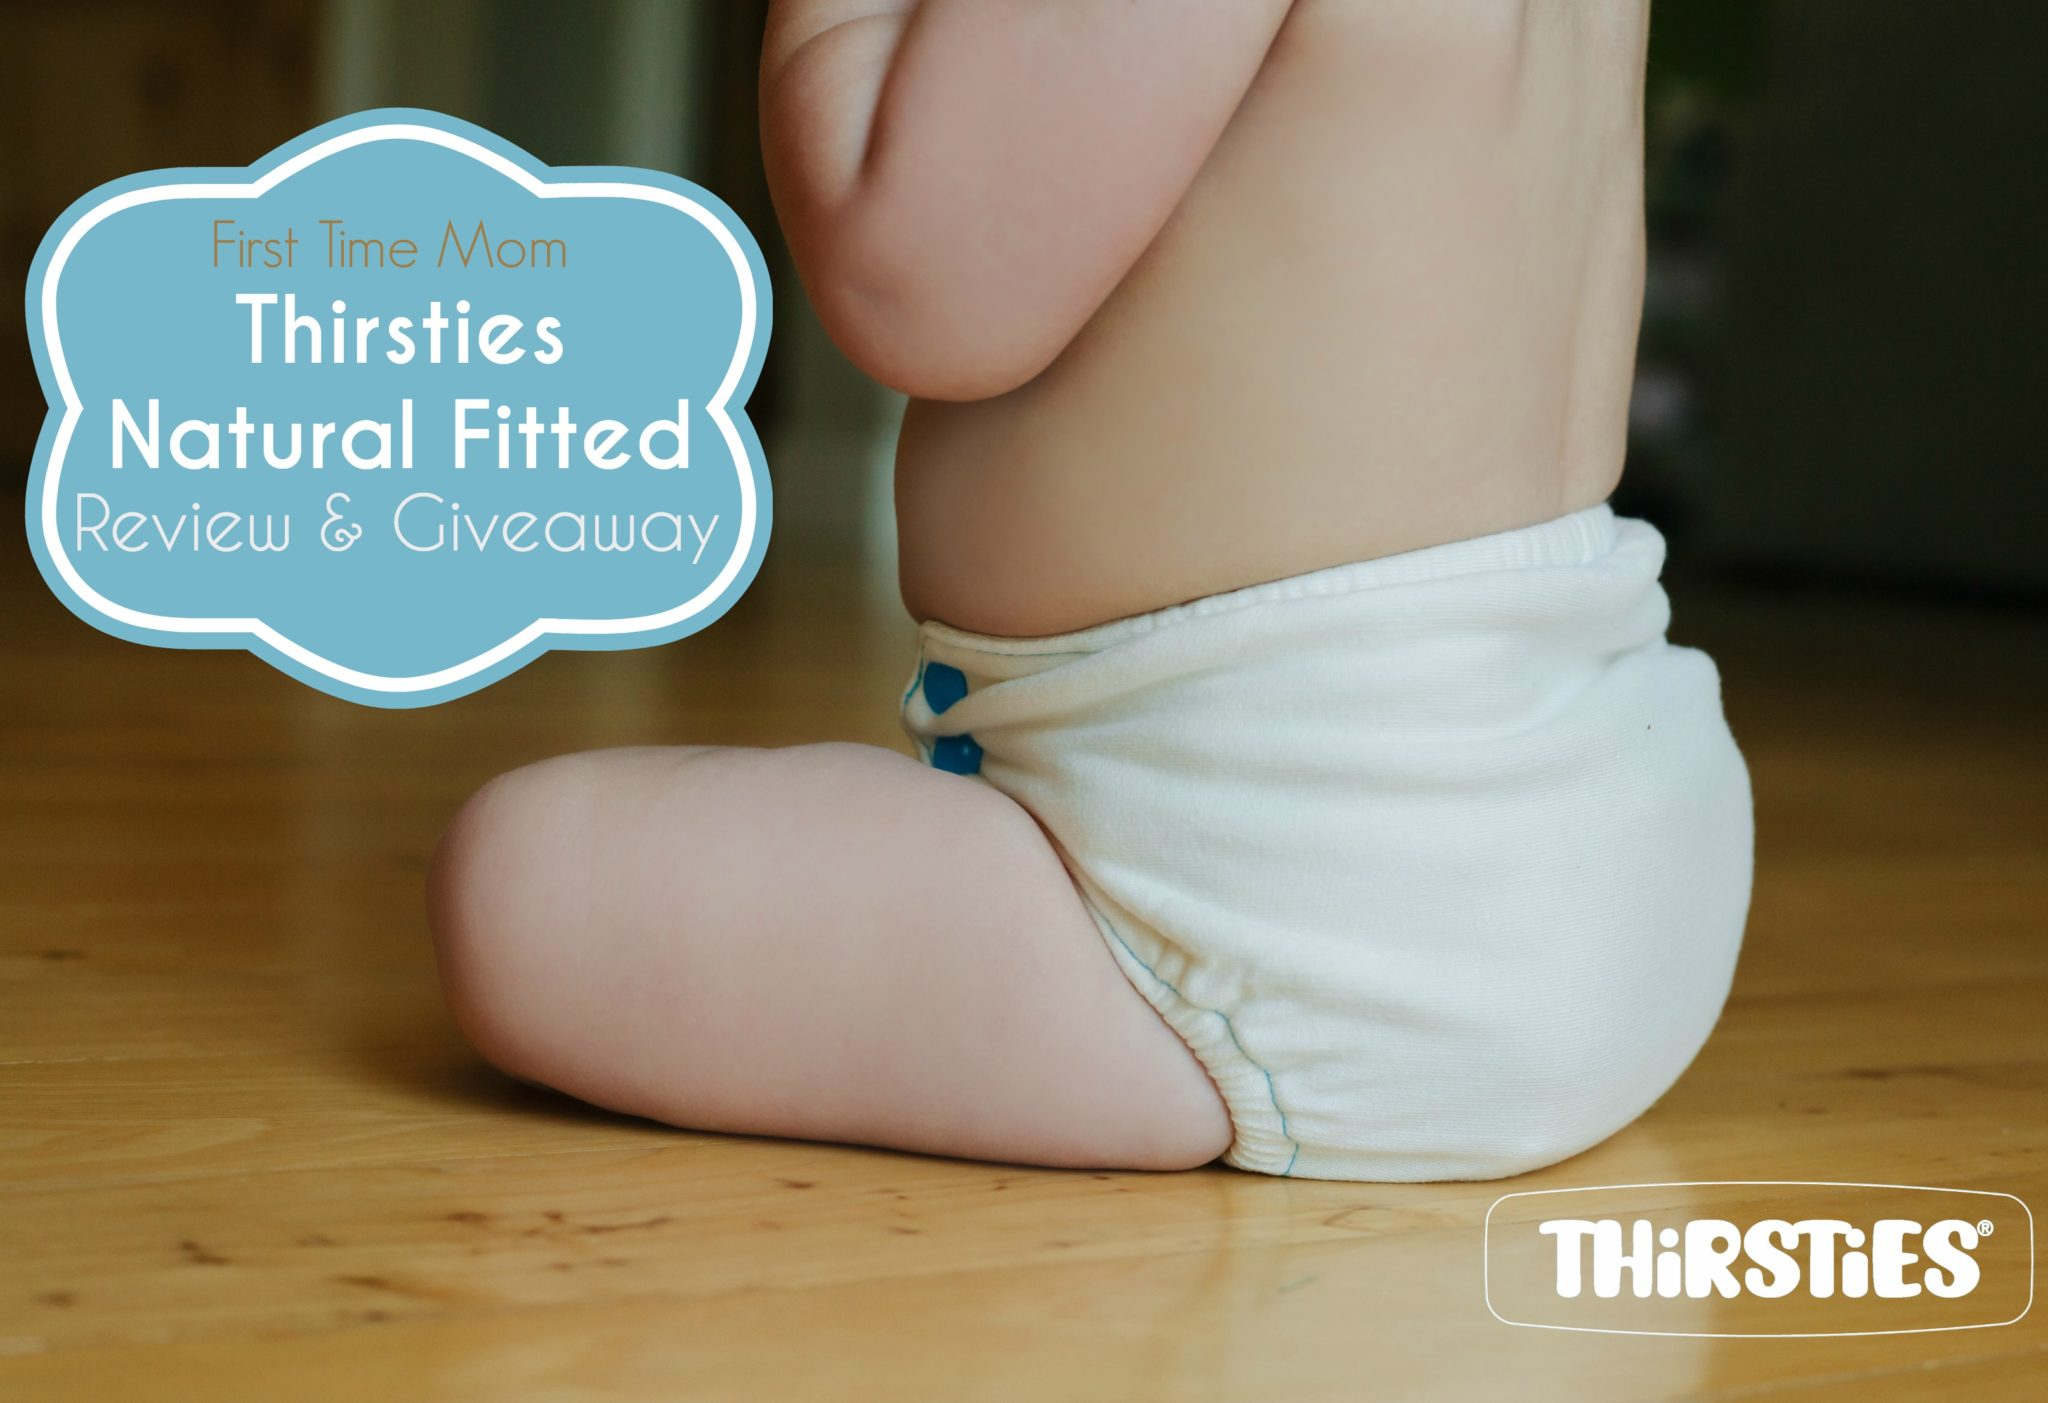 Thirsties Natural Fitted Review